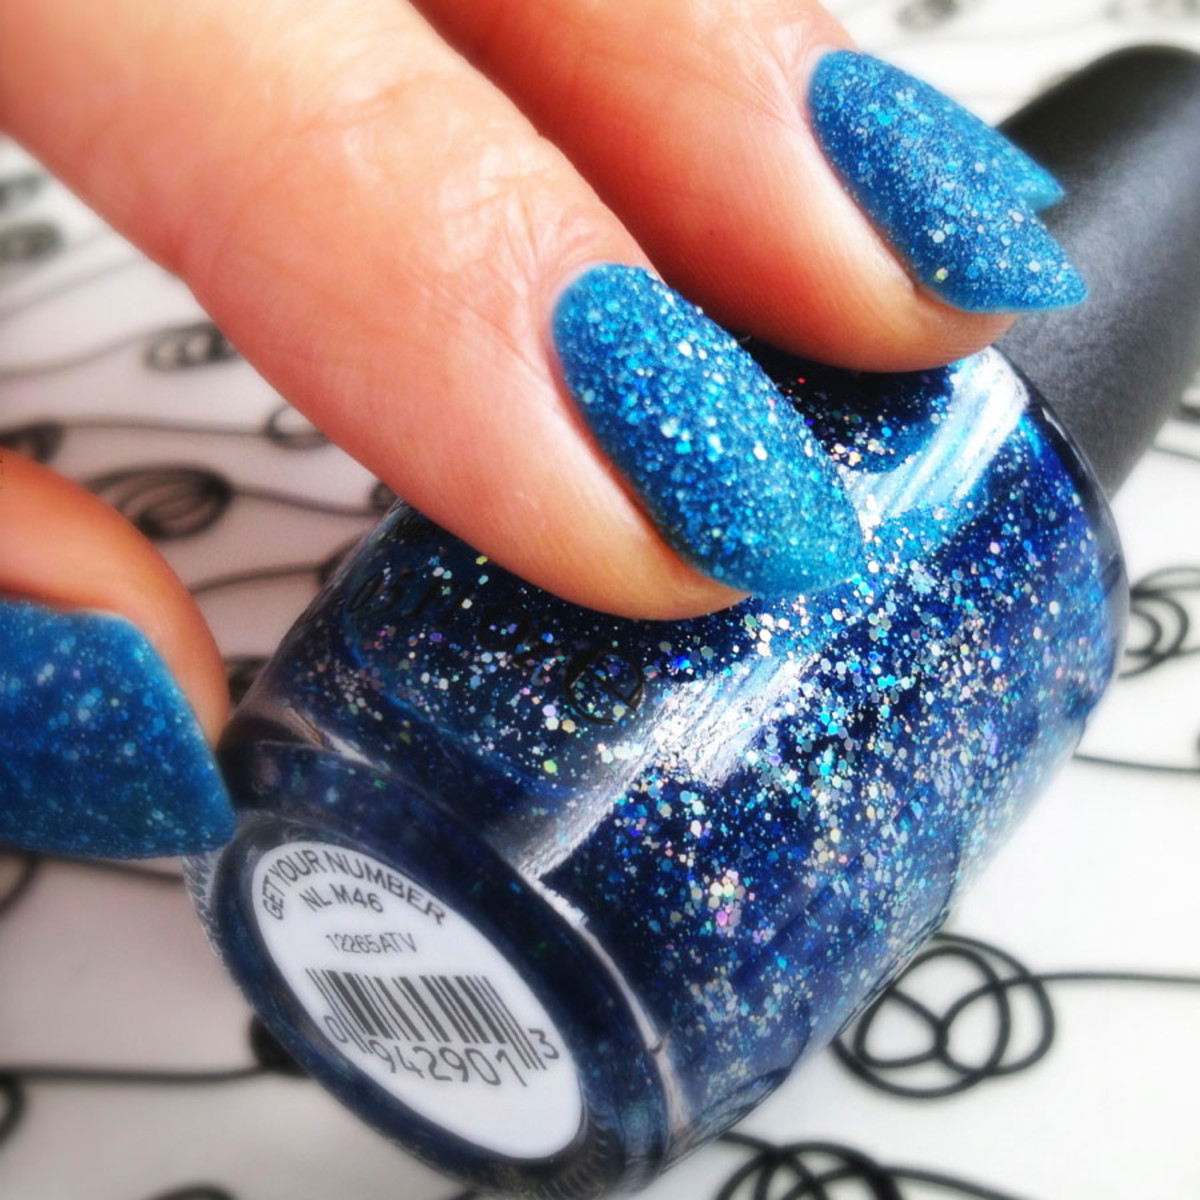 OPI Get Your Number Liquid Sand_Mariah Carey Collection